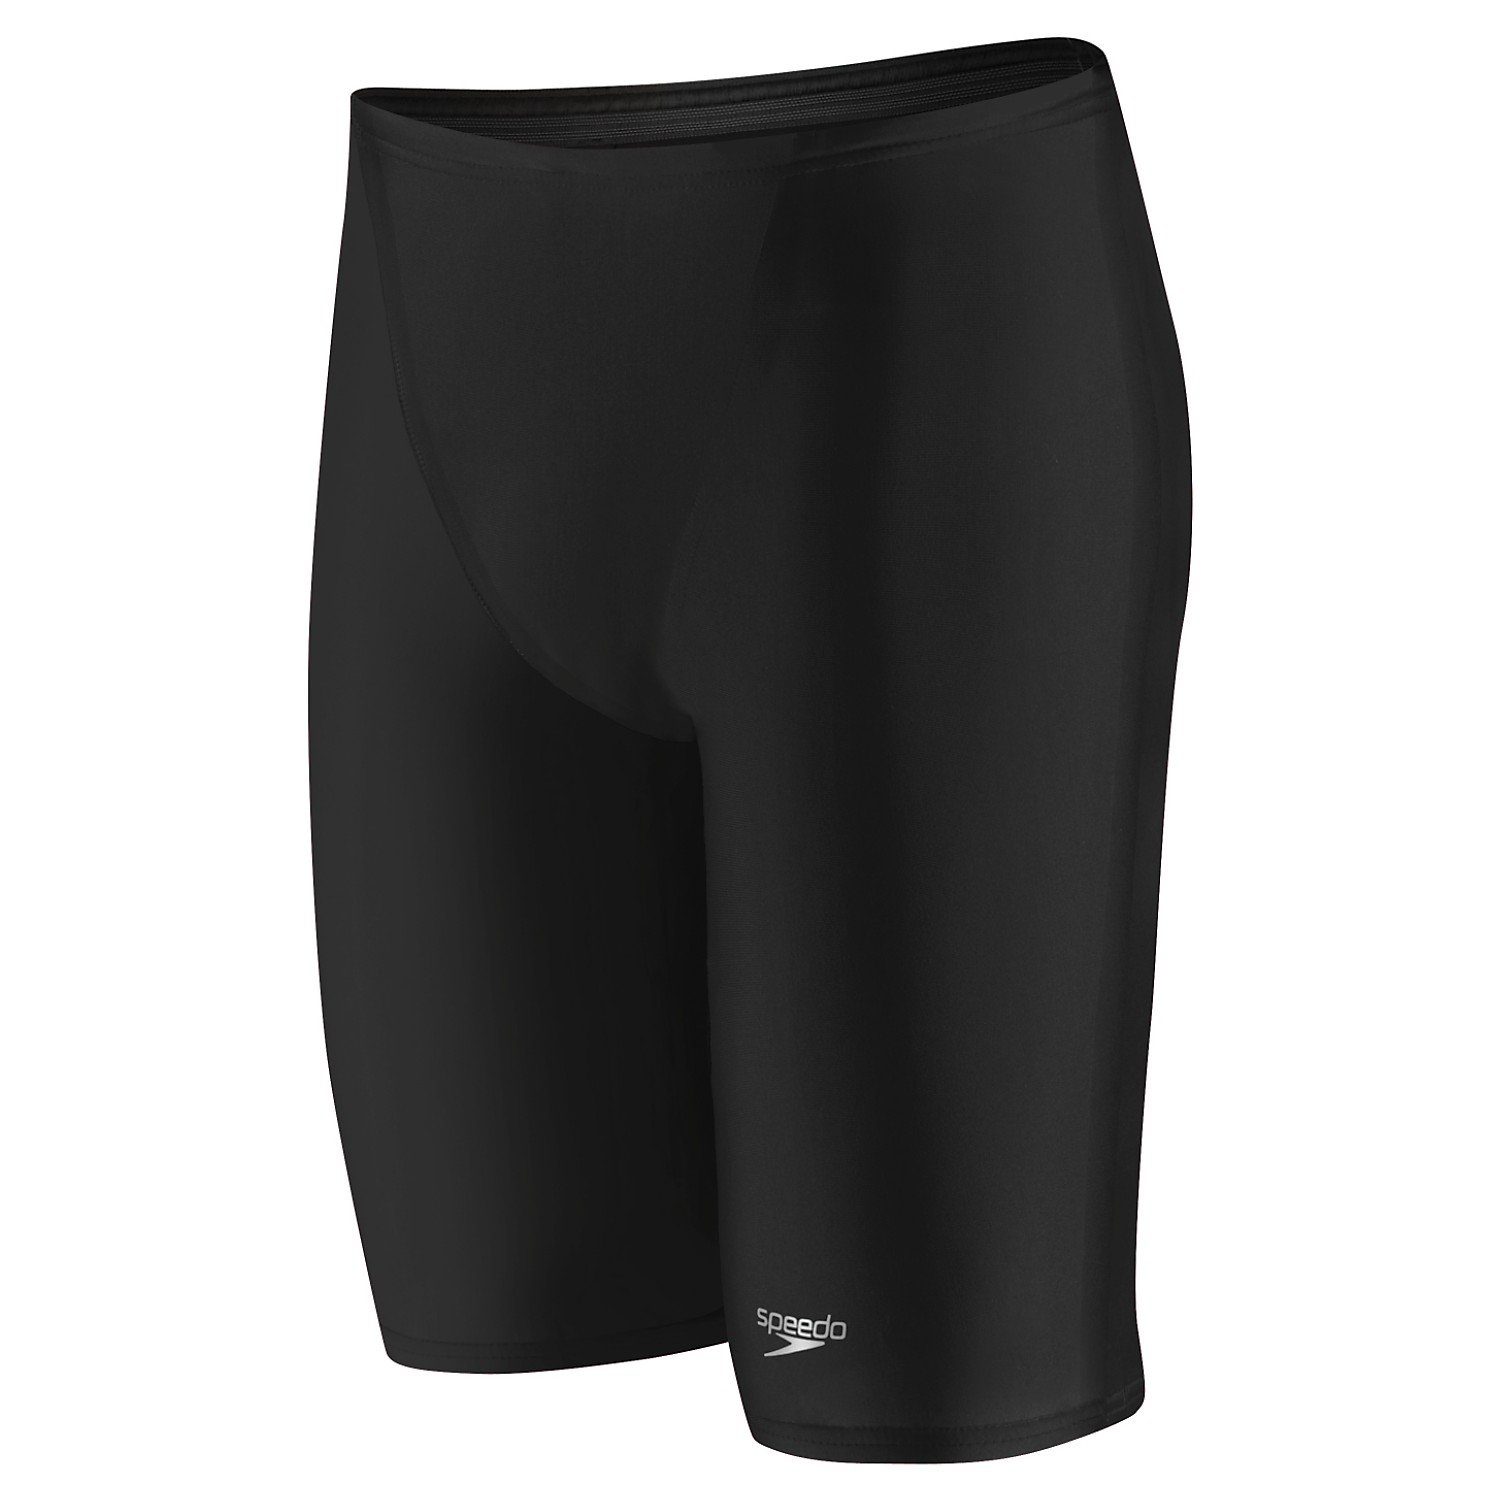 LZR RACER PRO - MALE